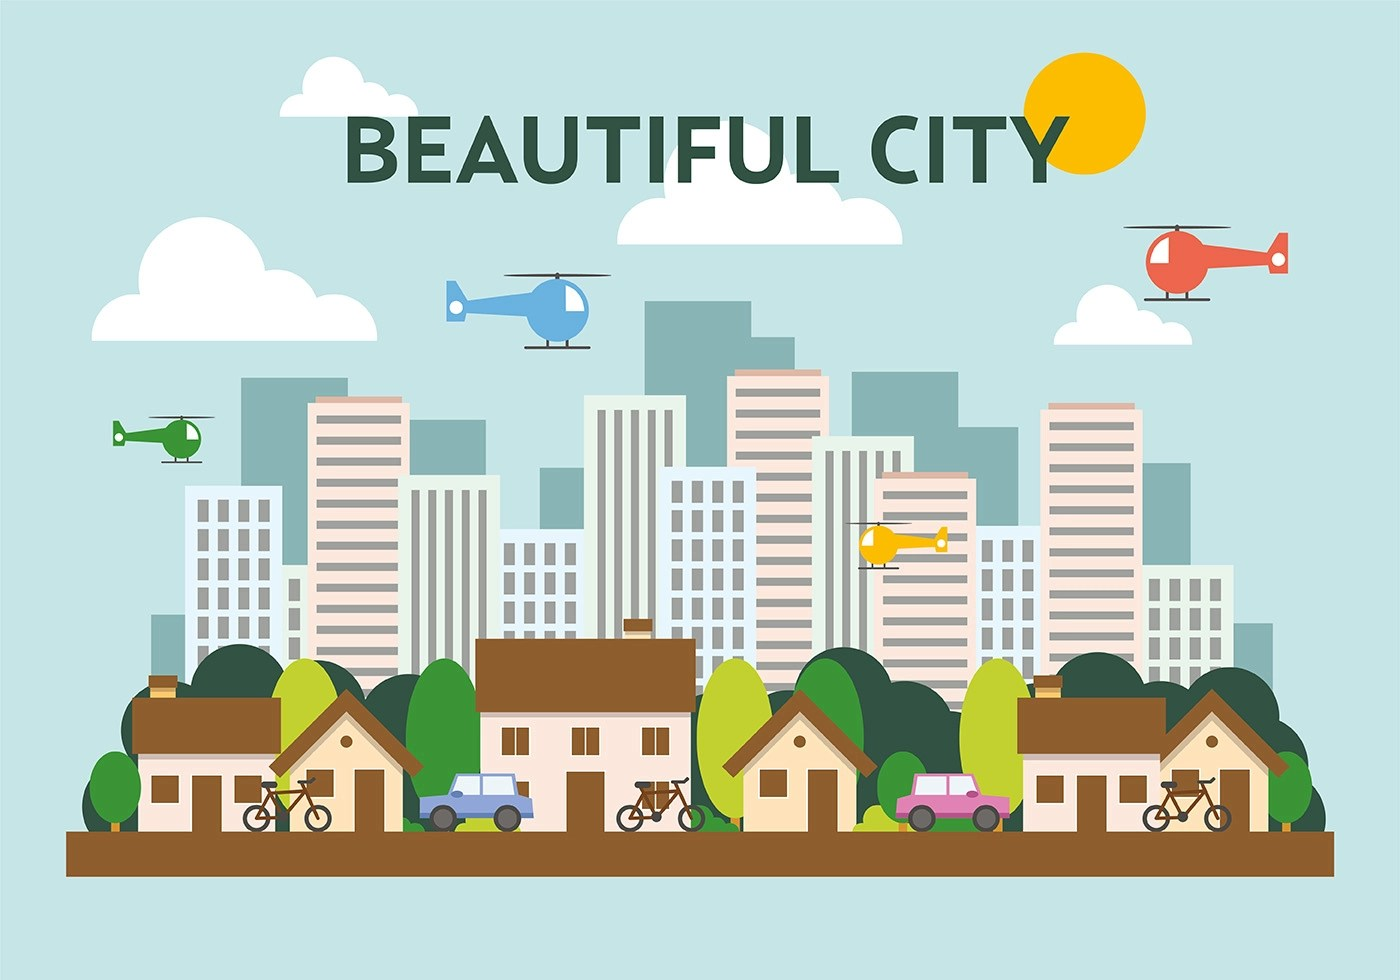 Mumbai City Wallpaper Hd Suburban Flat Cityscape Vector Illustration Download